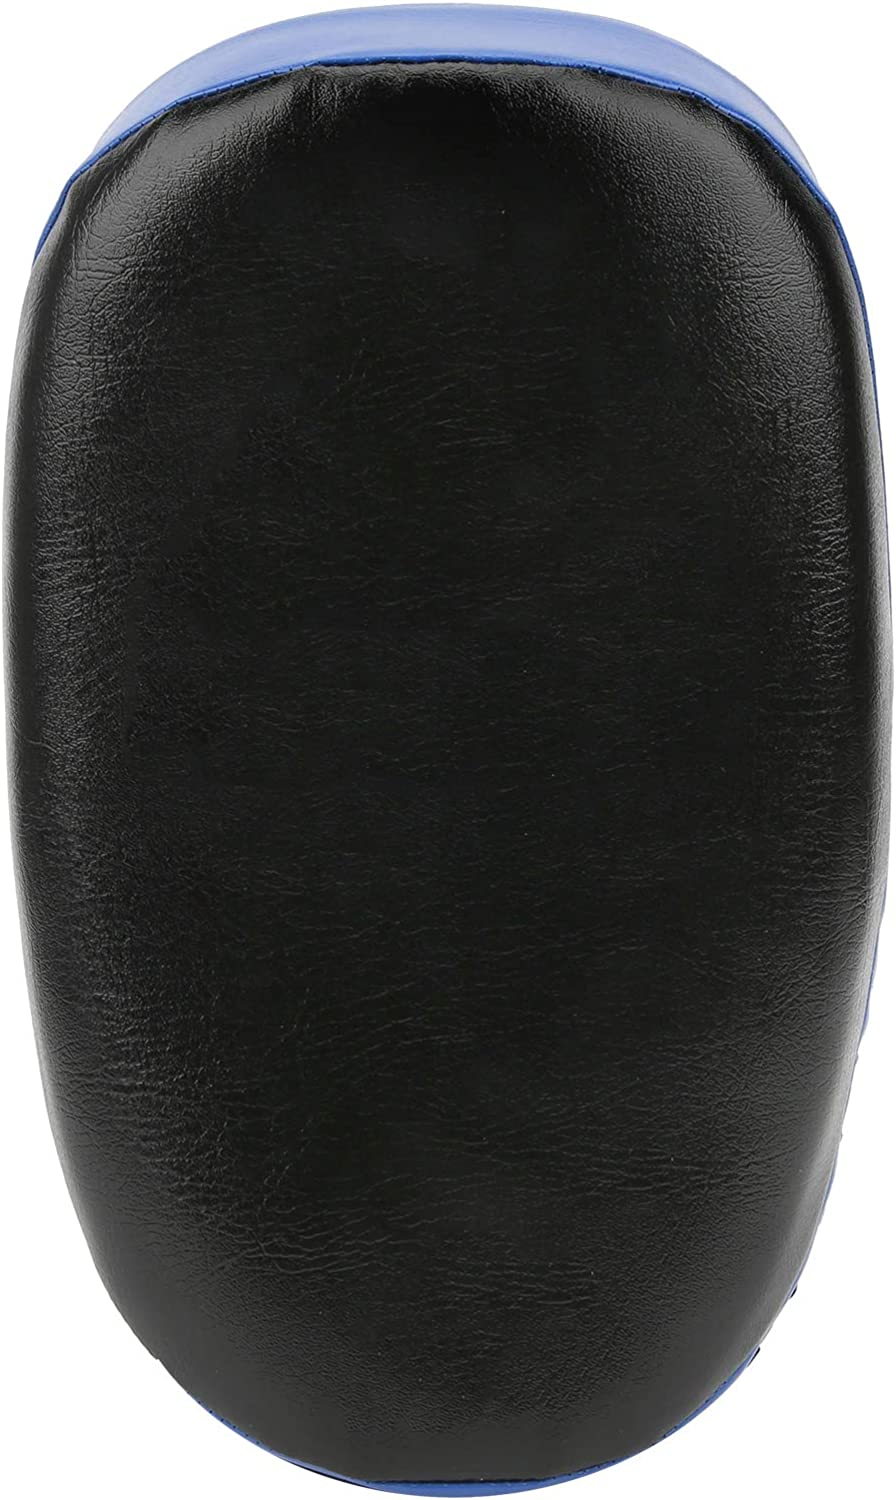 Max 82% OFF 01 Boxing Kick Pad 13x Reliable Wear‑Resistant Tampa Mall